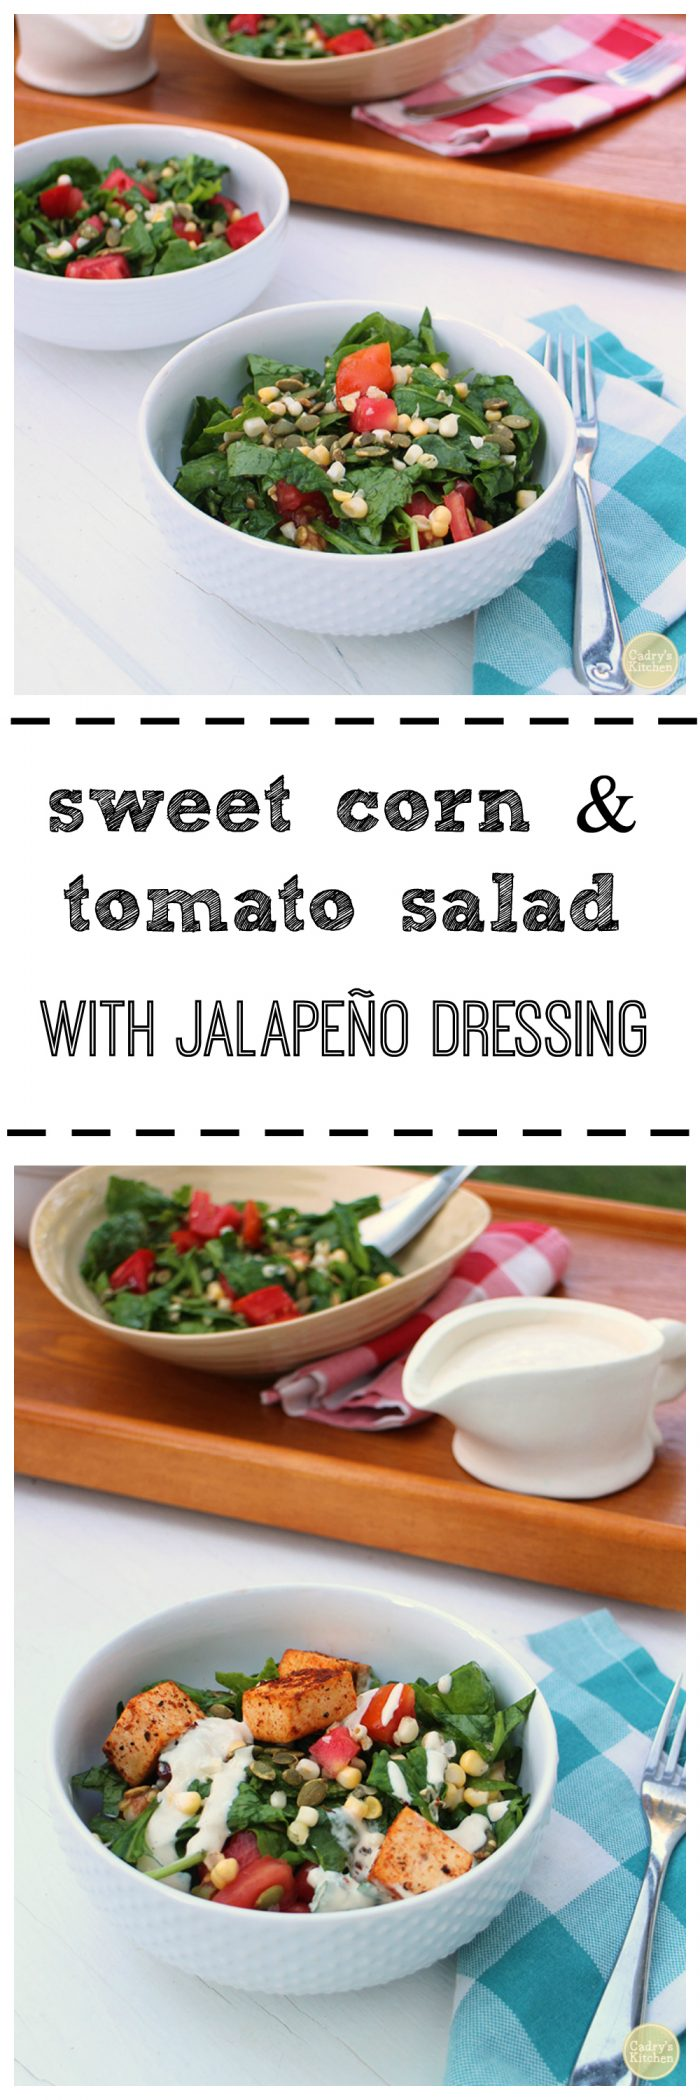 Sweet corn & tomato salad with jalapeno dressing - The quintessential summer salad. Vegan | cadryskitchen.com